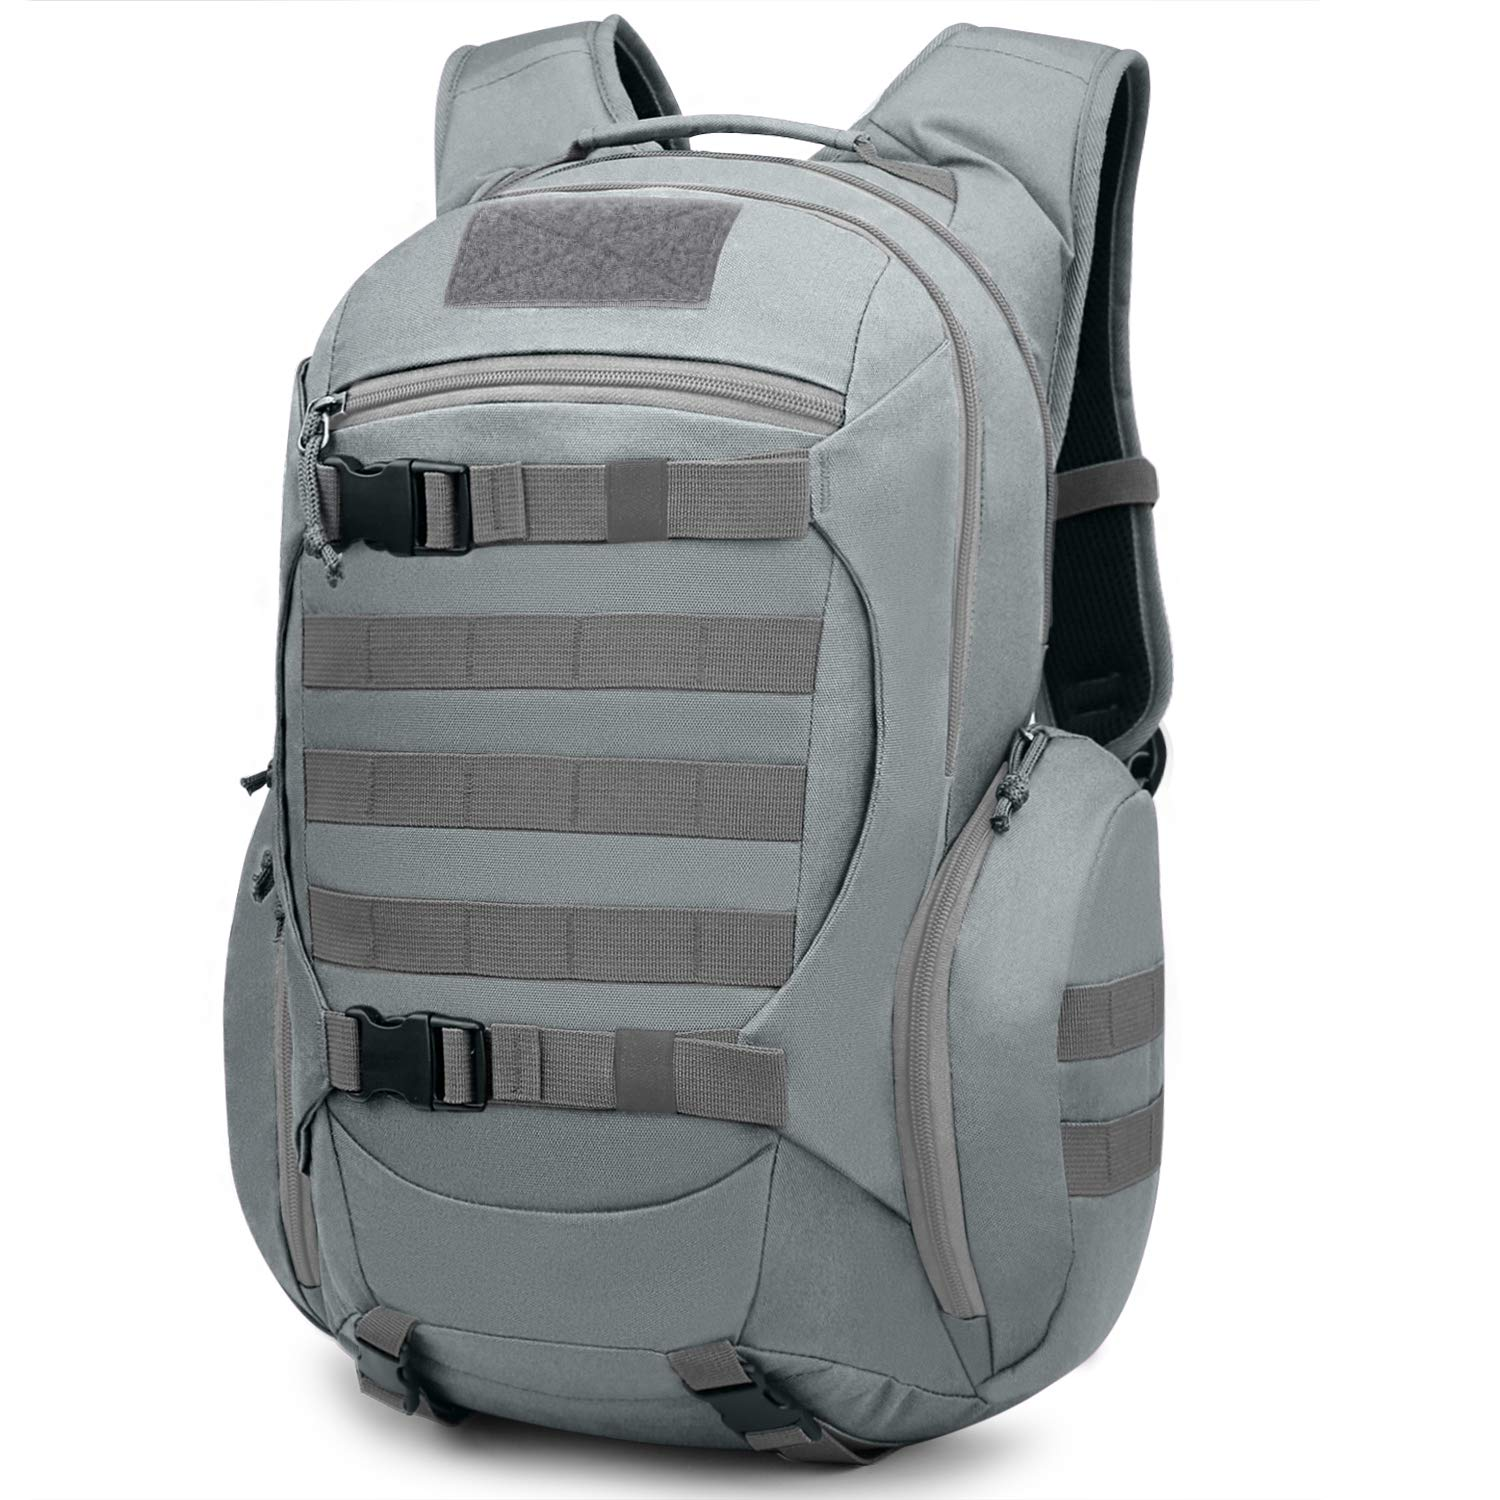 Mardingtop 28L Tactical Backpacks Molle Hiking daypacks for Camping Hiking Military Traveling 28L-Gray